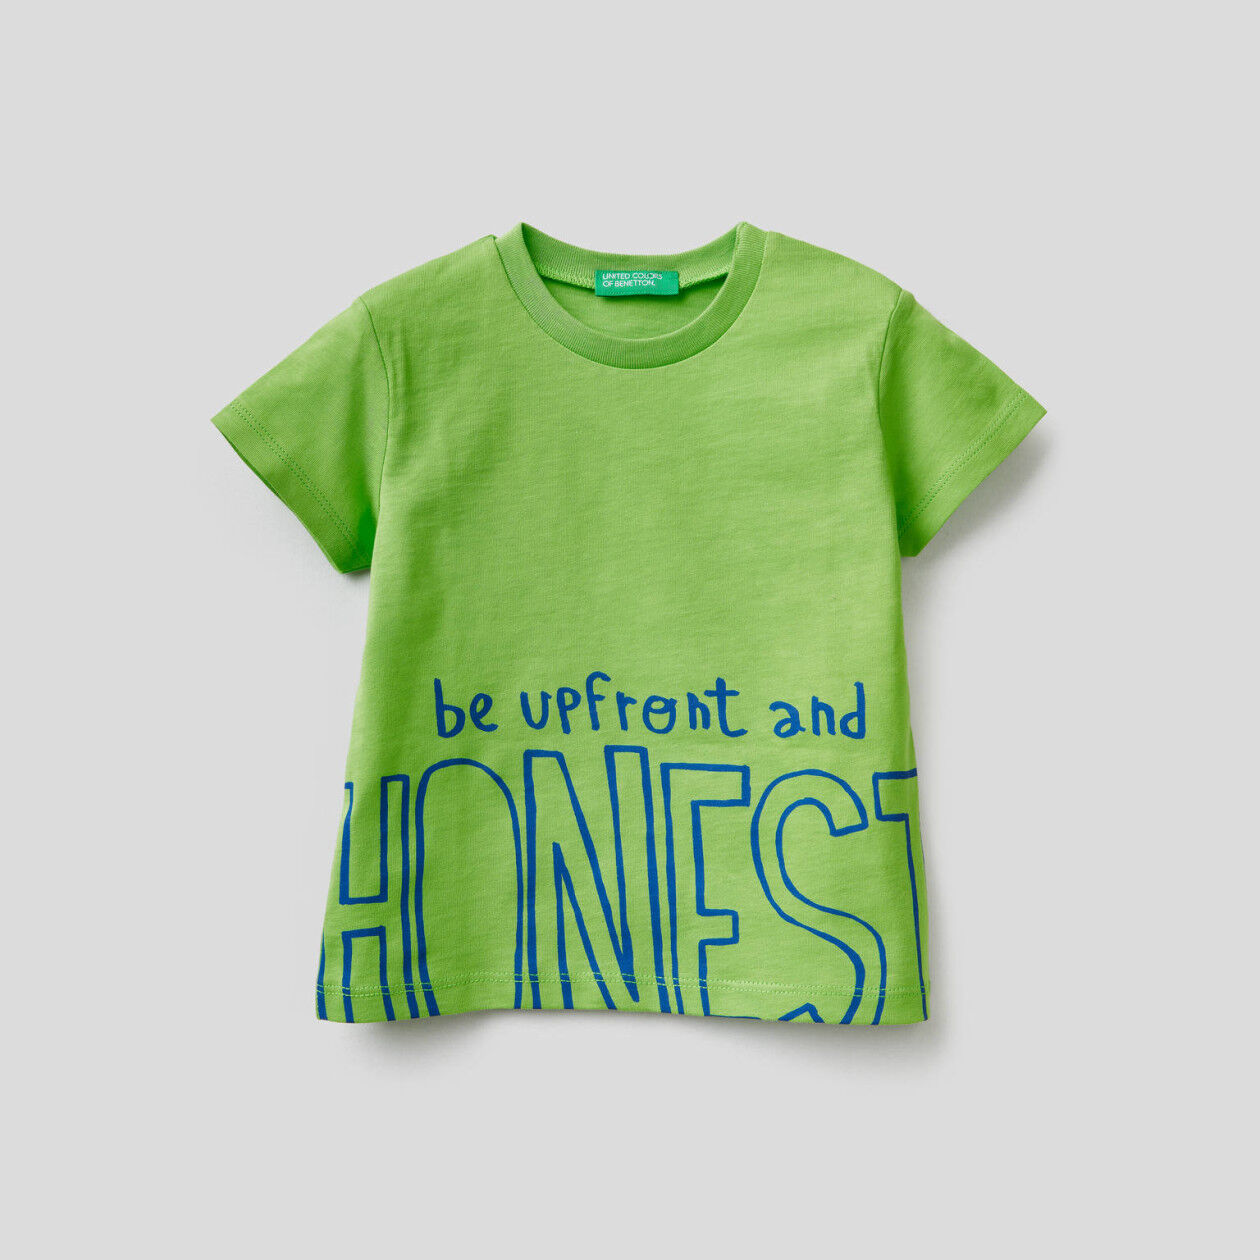 Cotton t-shirt with slogan